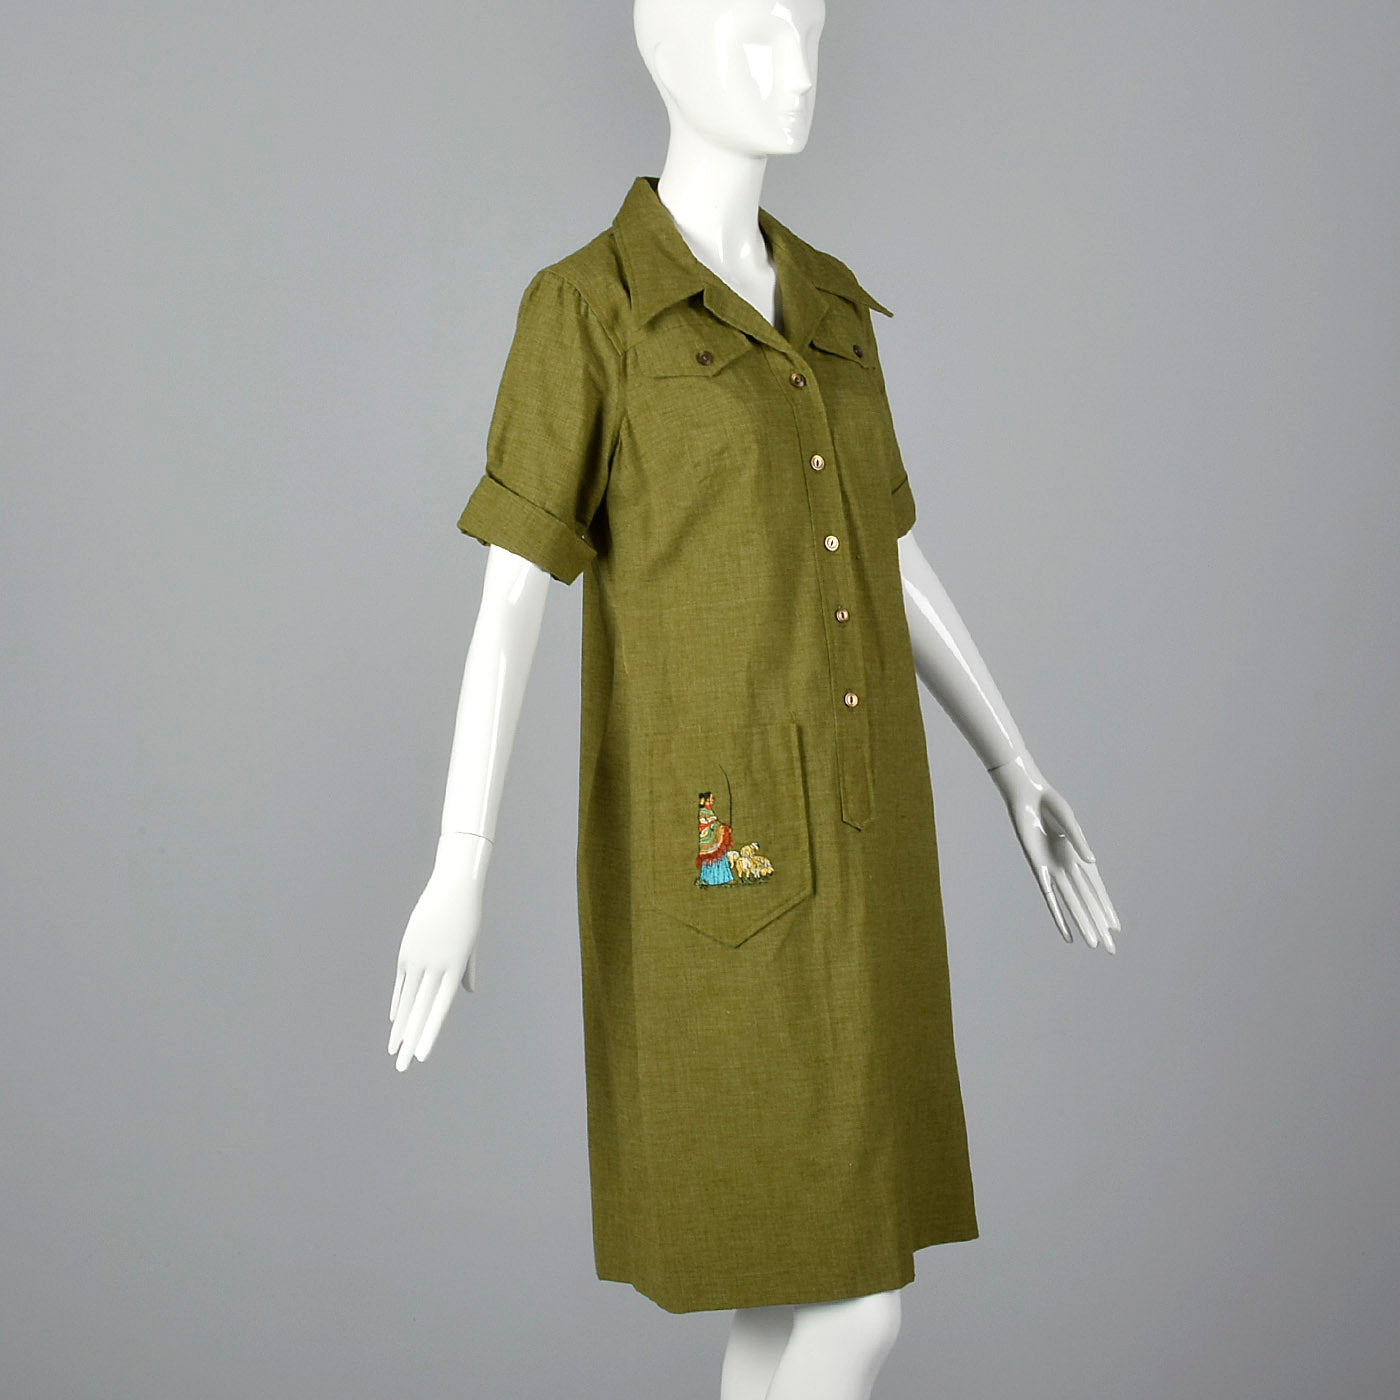 1960s Deadstock Novelty Sheepherder Dress